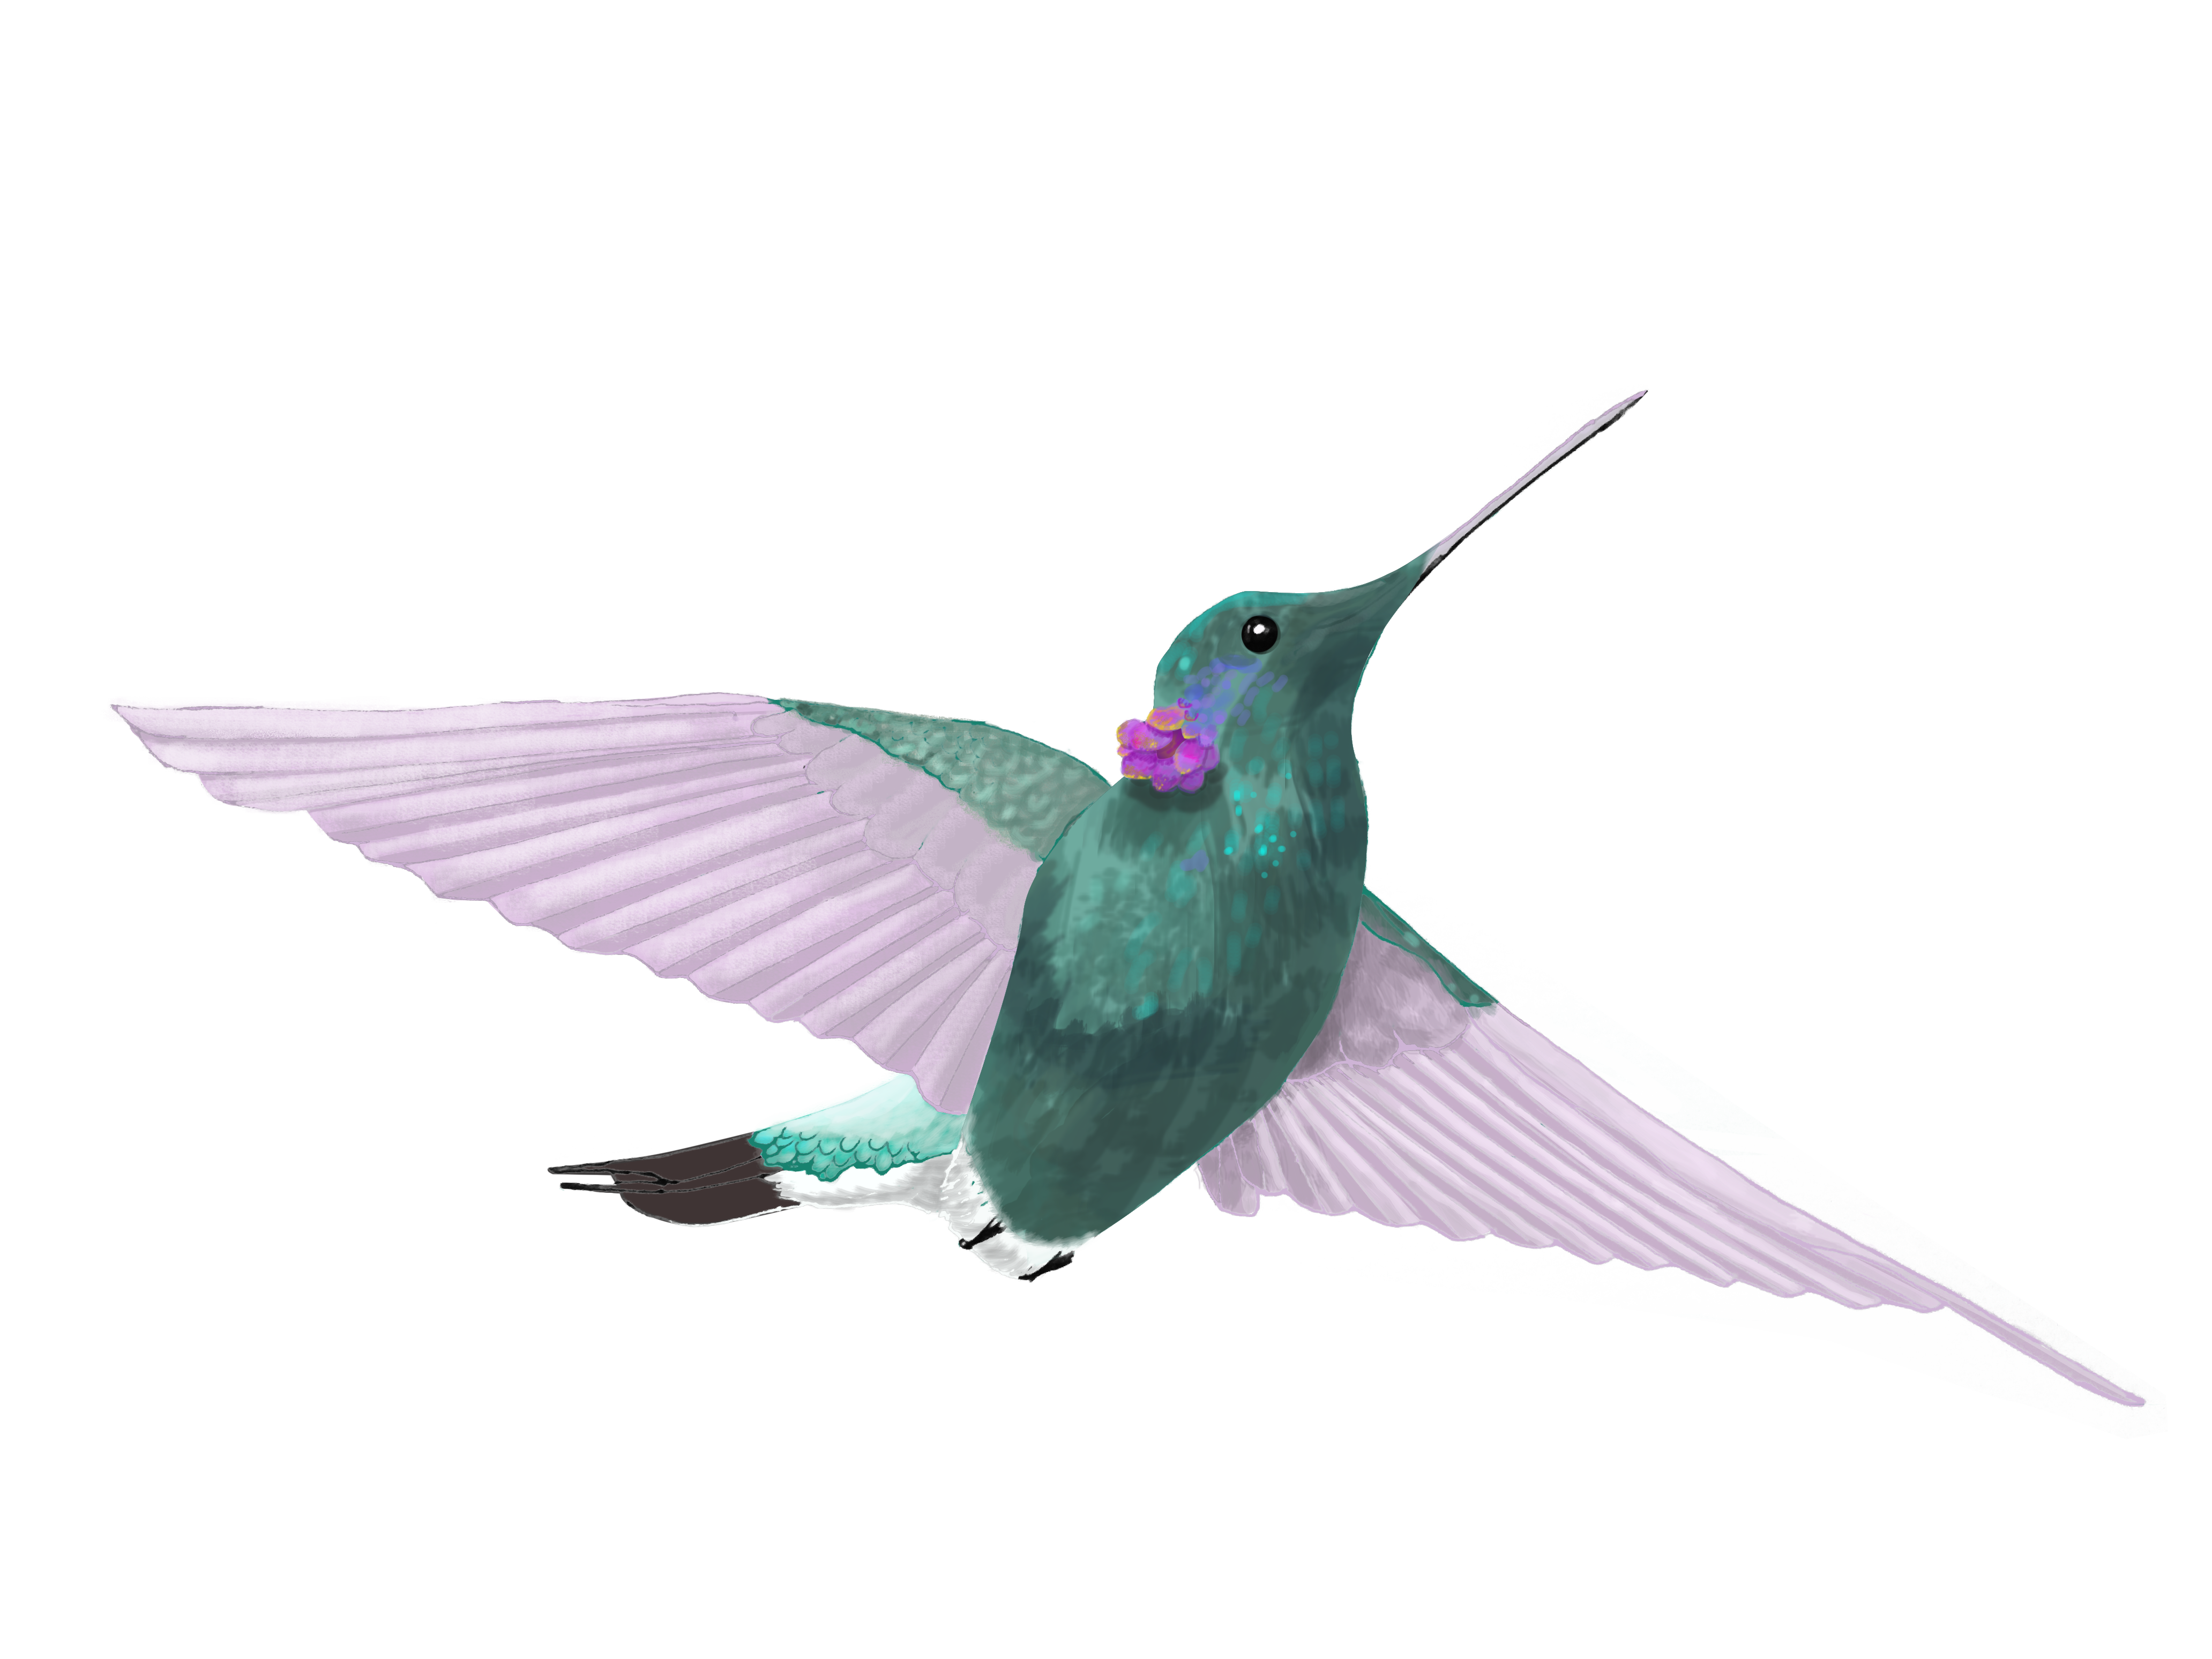 Hummingbird by Cri Cri Studio